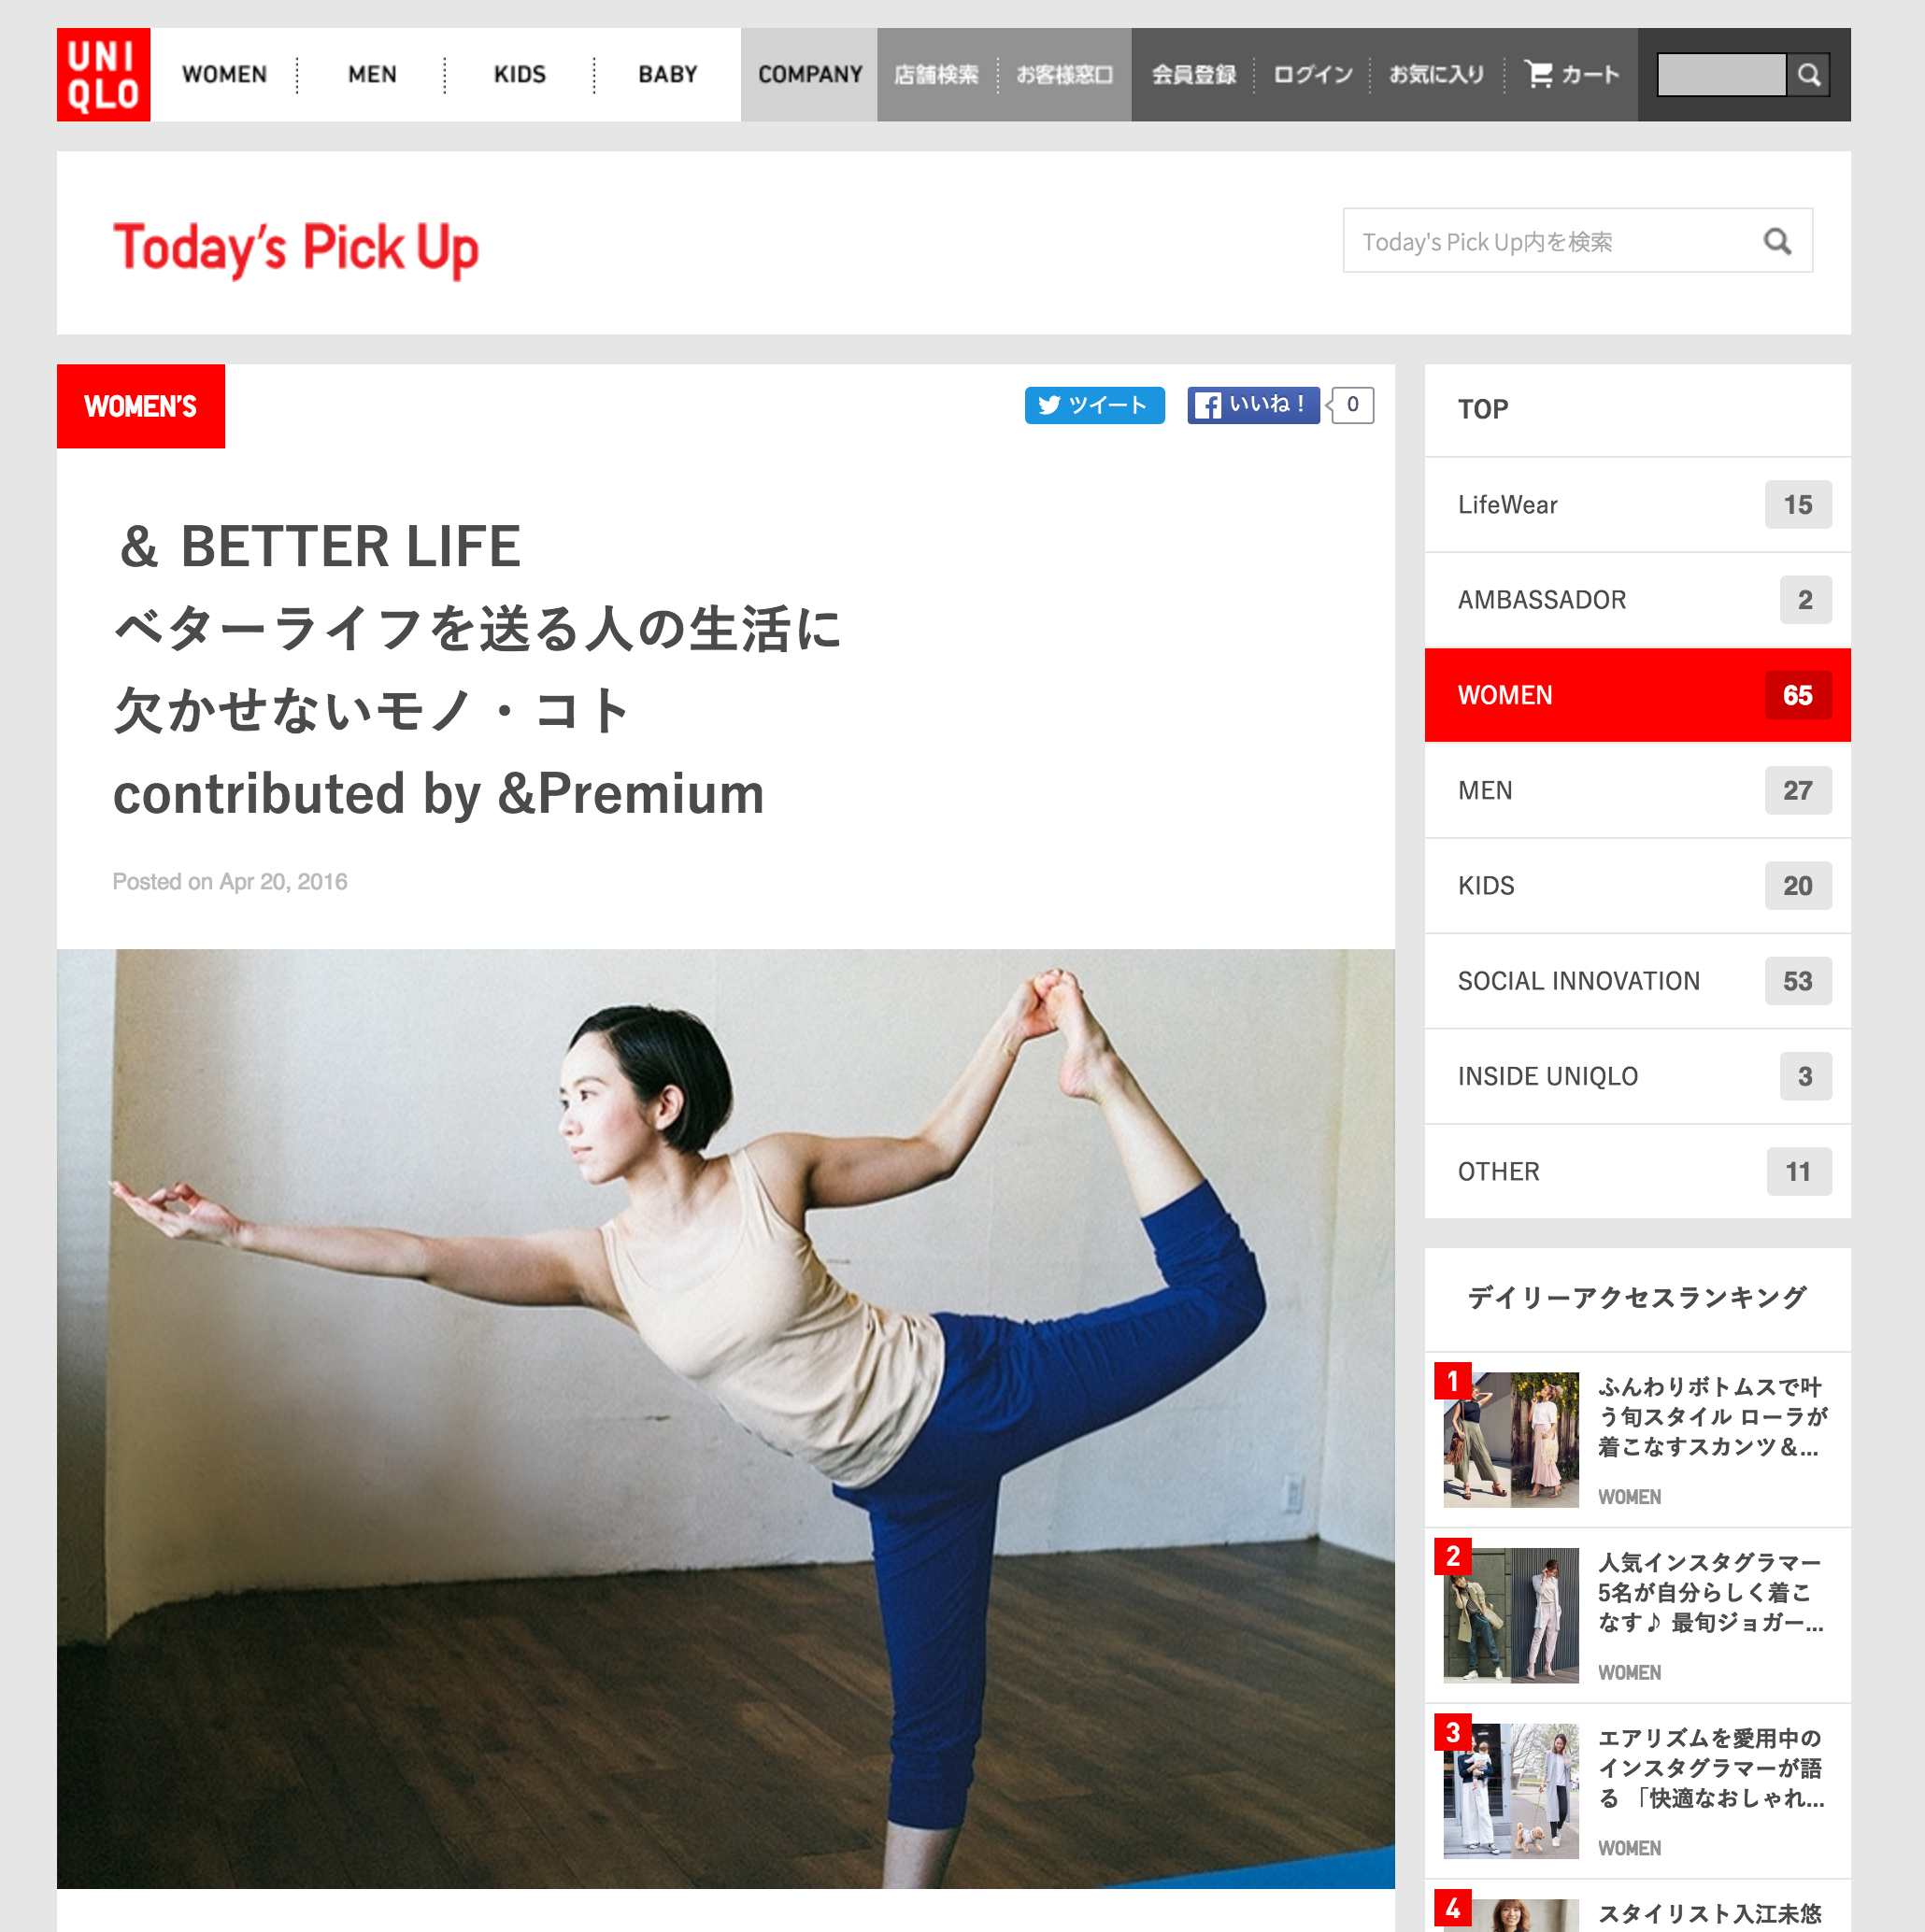 FireShot Capture 1 - & BETTER LIFE ベターライフを送る人の生活_ - http___www.uniqlo.com_jp_news_topics_2016042002_